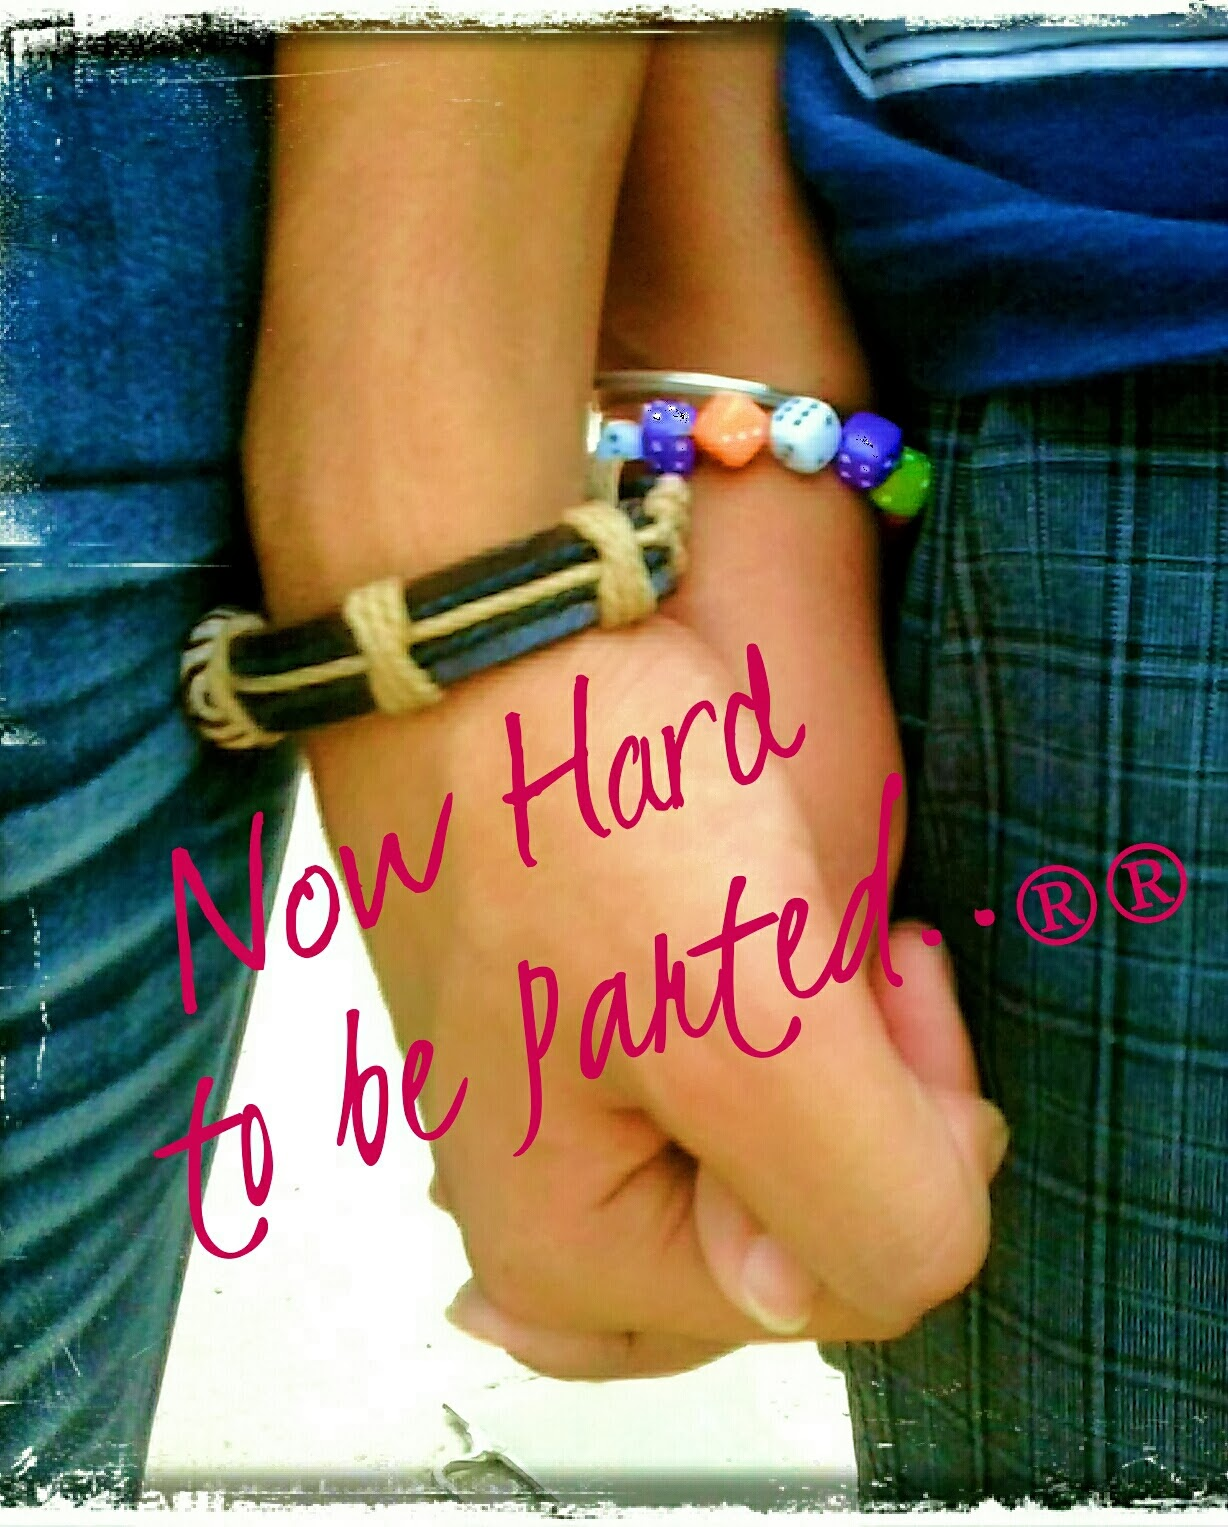 hands together in love